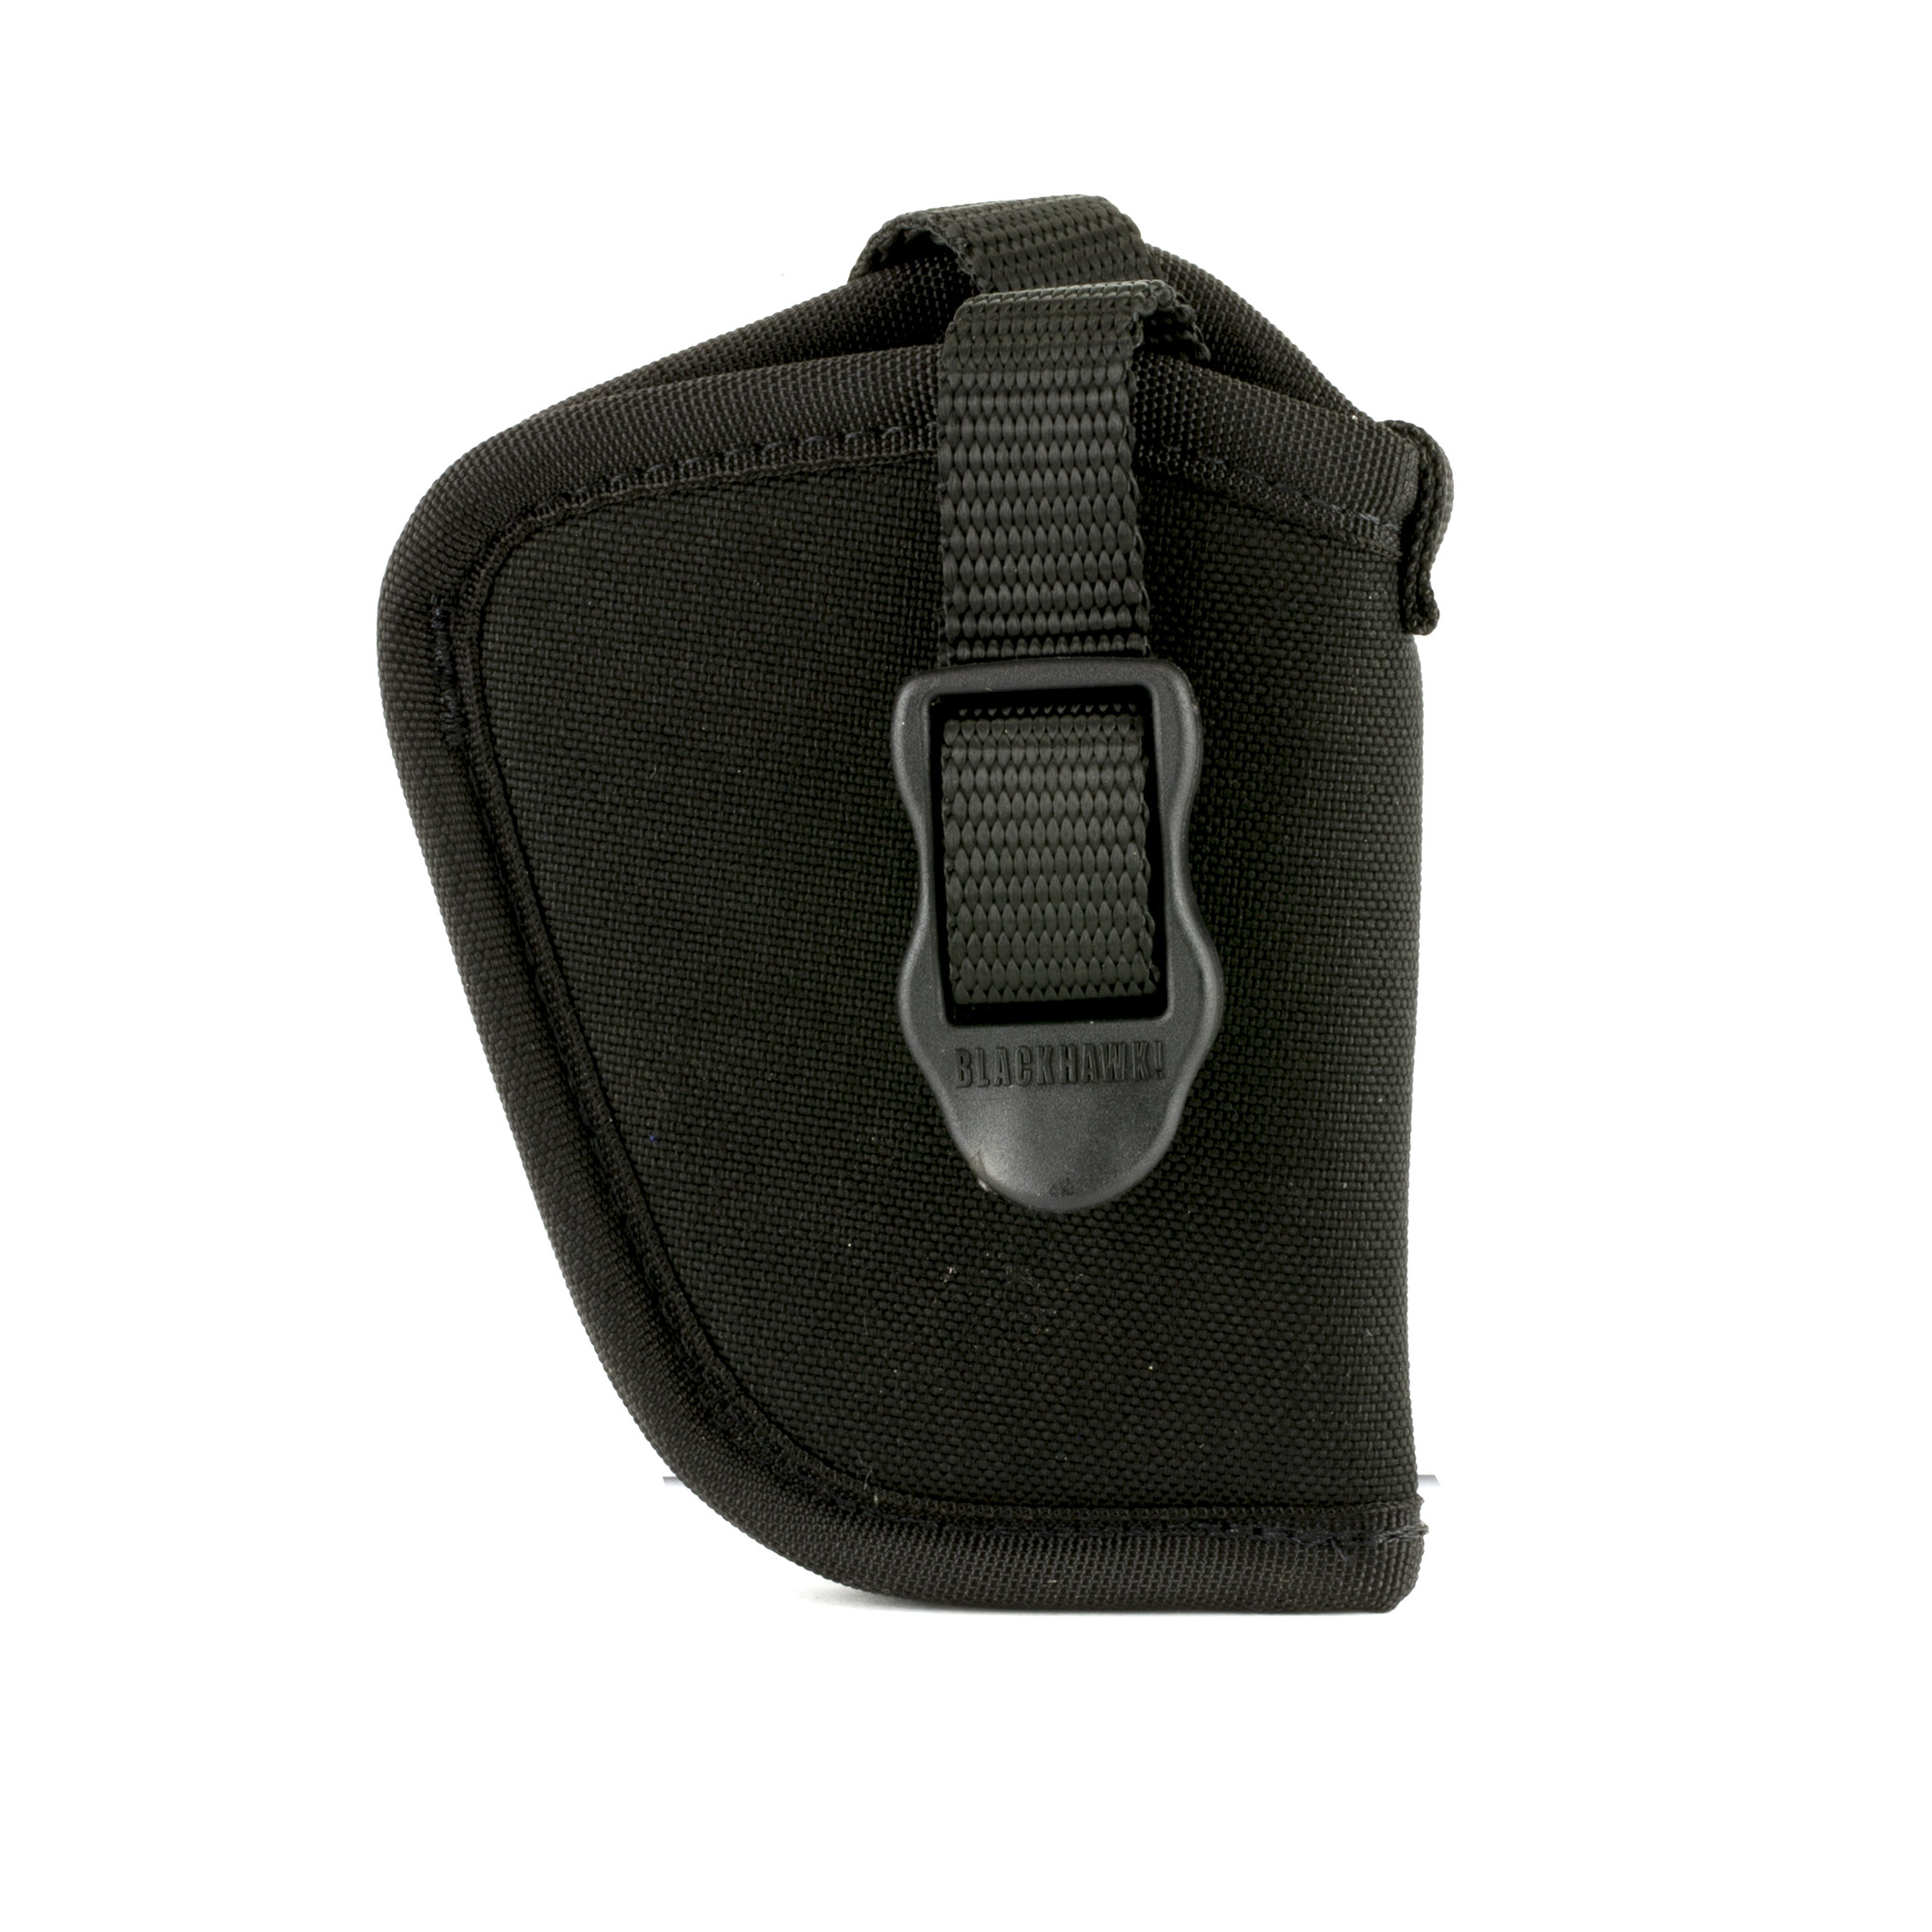 """BLACKHAWK's classic"""" medium high ride design allows you to carry your favorite revolver or auto on any belt up to 2"""" wide. The BLACKHAWK Hip Holster is made of 1000 denier nylon"""" closed-cell foam padding and smooth nylon lining with a tough nylon web retention strap that has a combination adjustment buckle and sturdy snap for an easy draw. The holster features a nylon web sight channel and the extra strength injection molded belt loop accepts belts up to 2""""."""